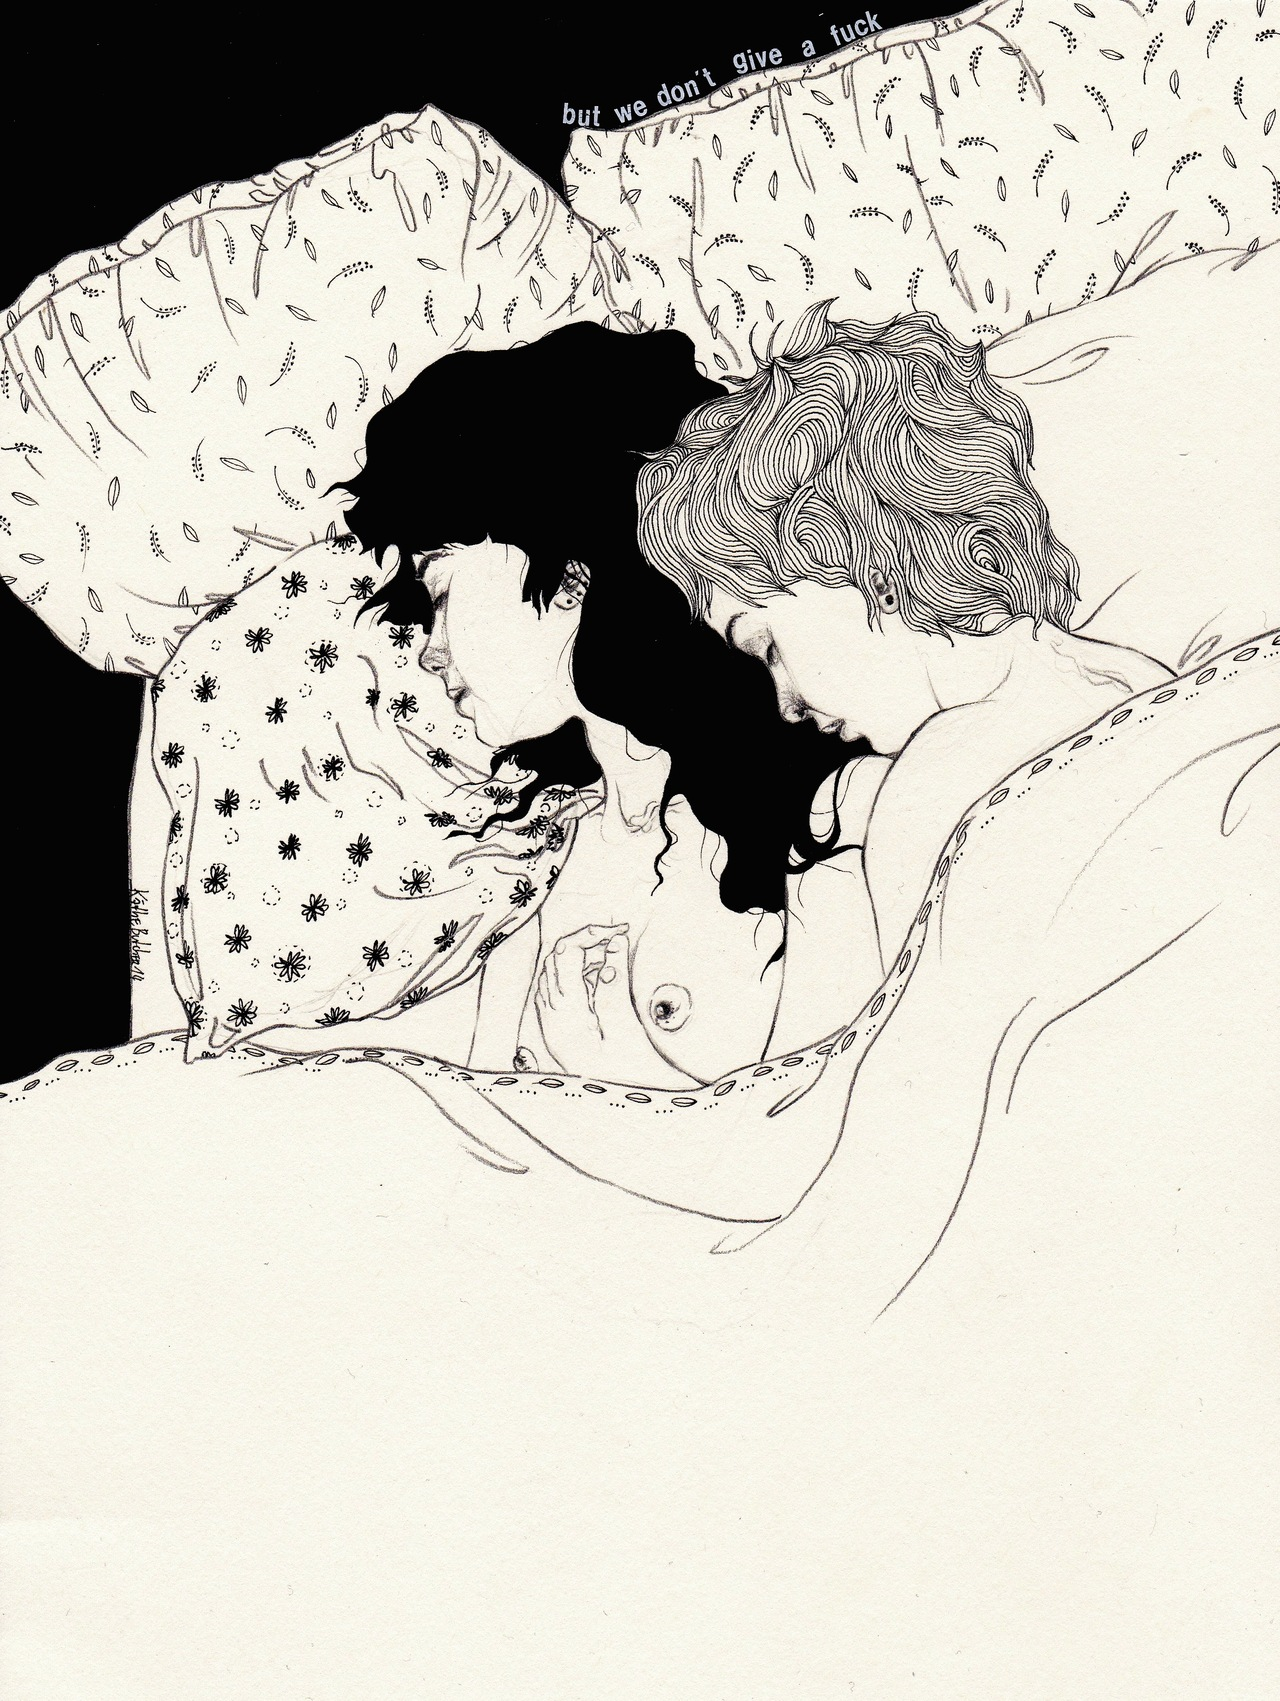 Black and White drawings from Kaethe Butcher: tumblr_mz1warj5iF1sj1vz2o1_1280.jpg